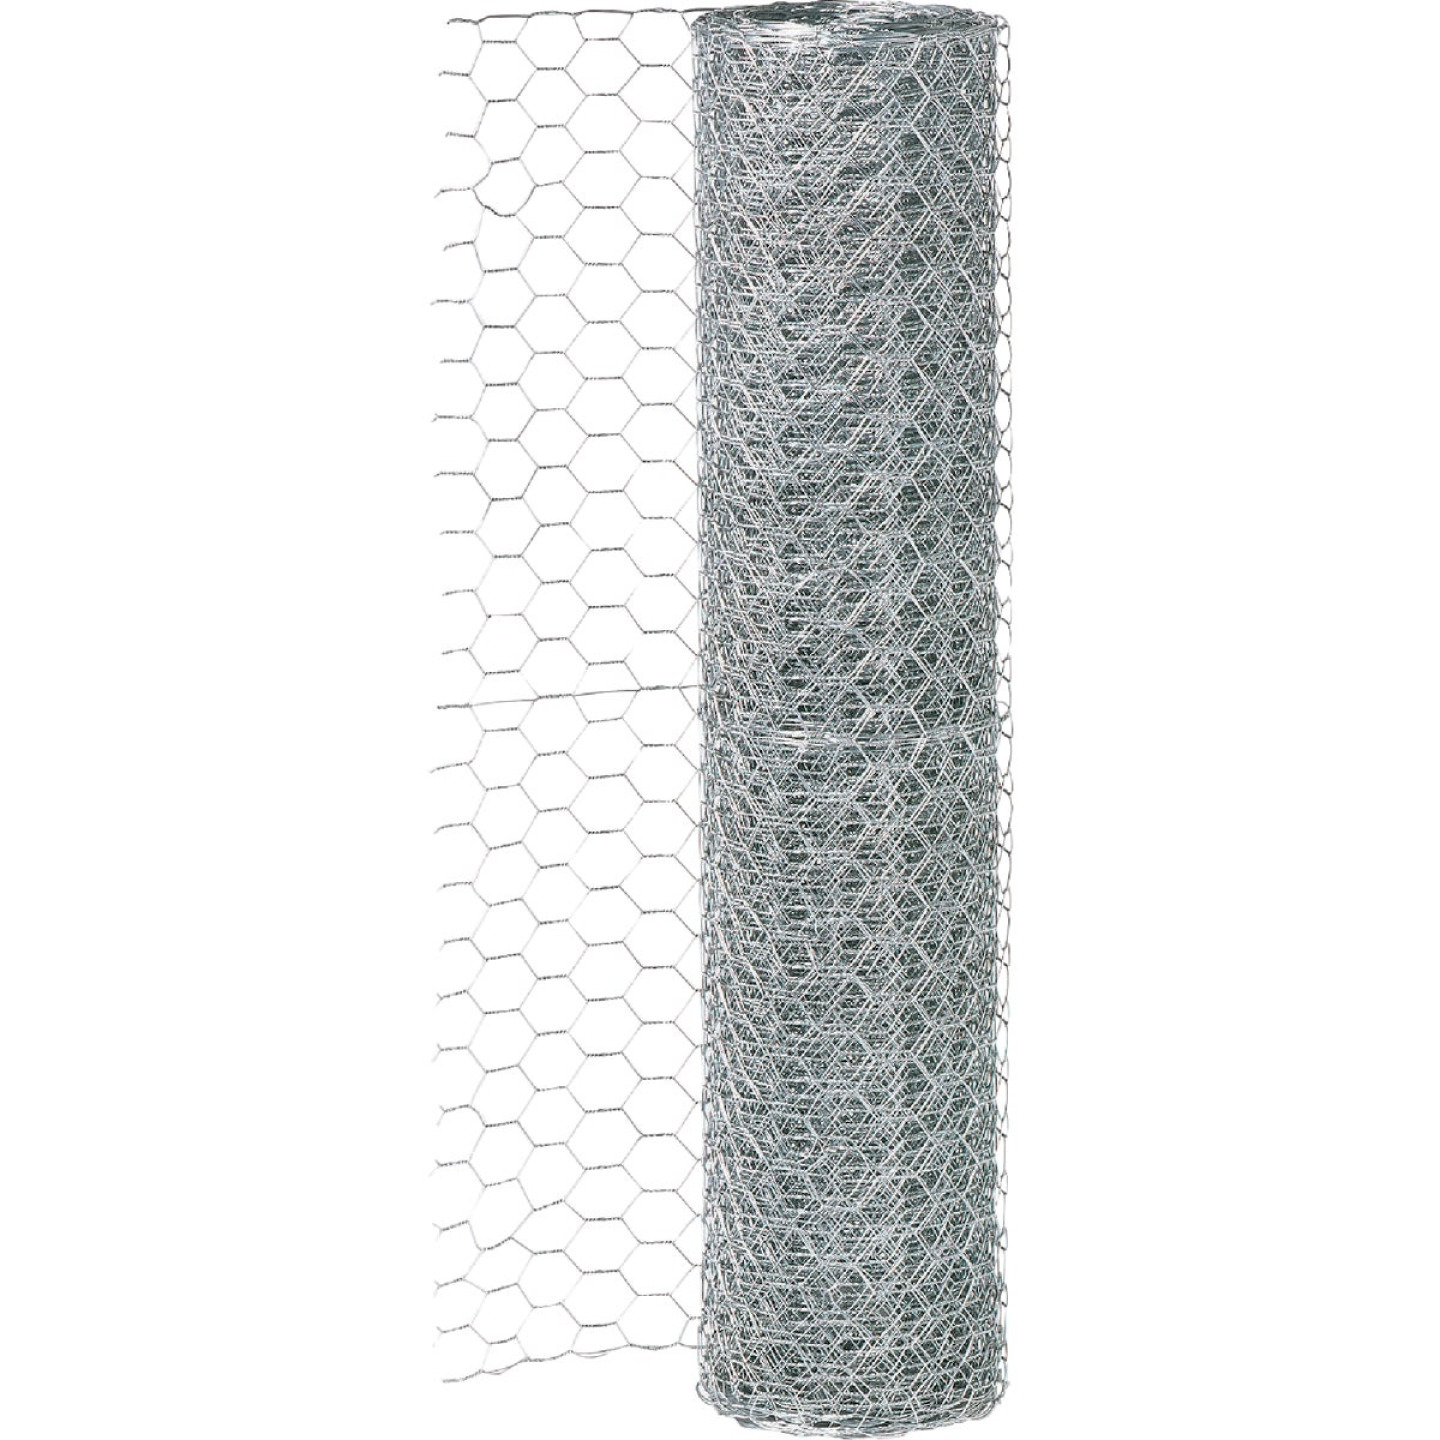 Do it 2 In. x 48 In. H. x 25 Ft. L. Hexagonal Wire Poultry Netting Image 2